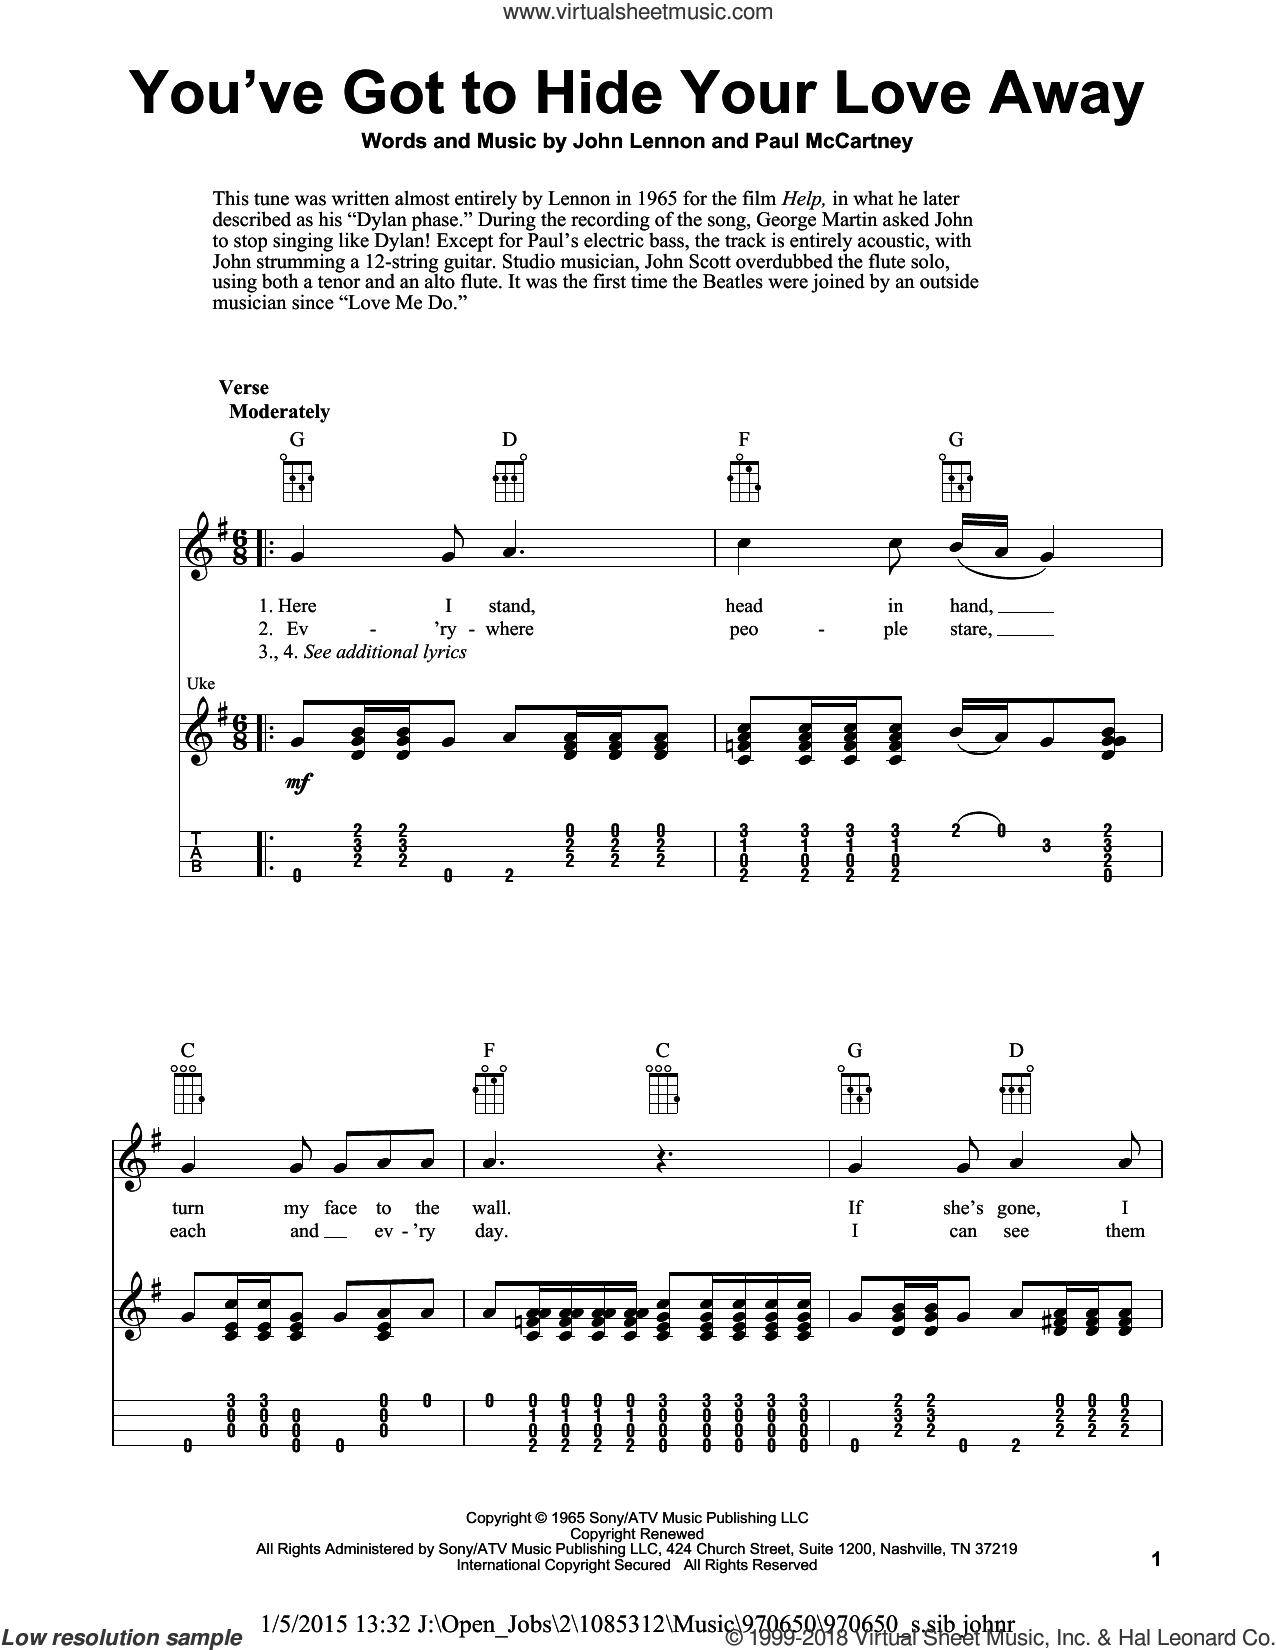 You've Got To Hide Your Love Away sheet music for ukulele by The Beatles, Eddie Vedder, Fred Sokolow, John Lennon and Paul McCartney, intermediate skill level